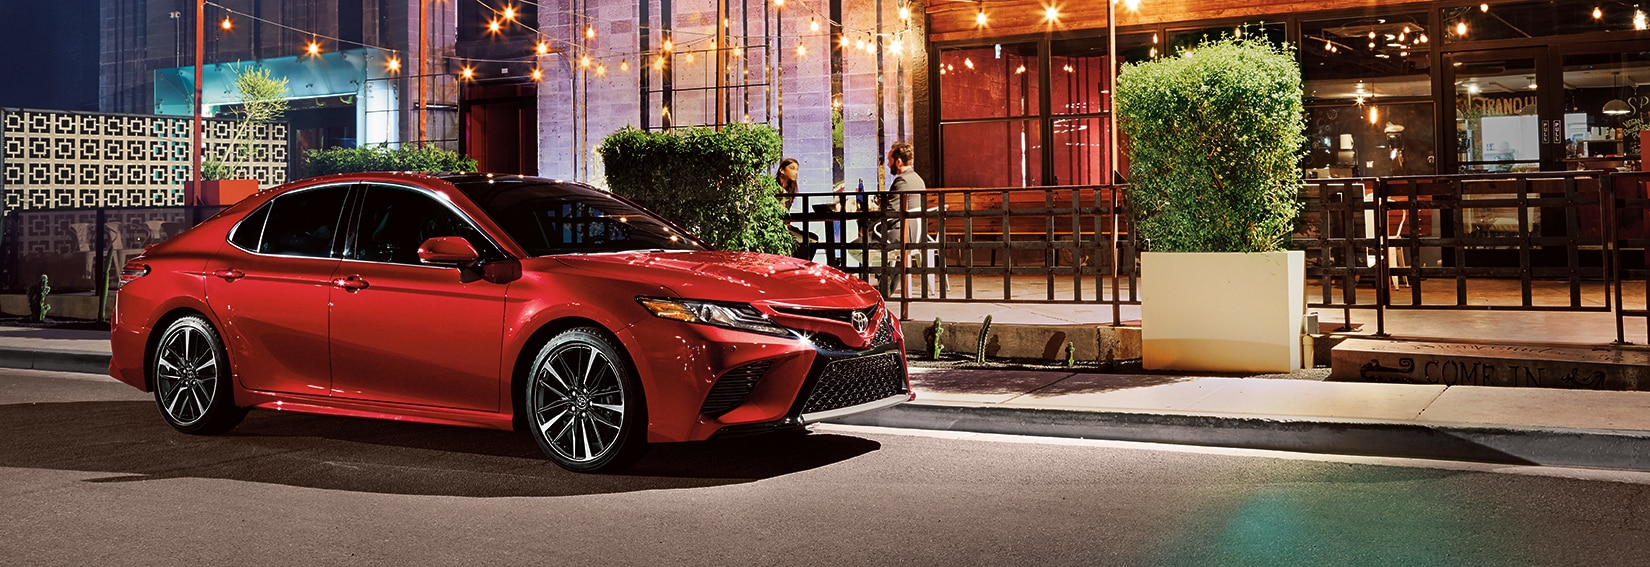 Boch Toyota is a Family Owned Dealership near Boston, MA | 2020 Toyota Camry parked outside of restaurant at night